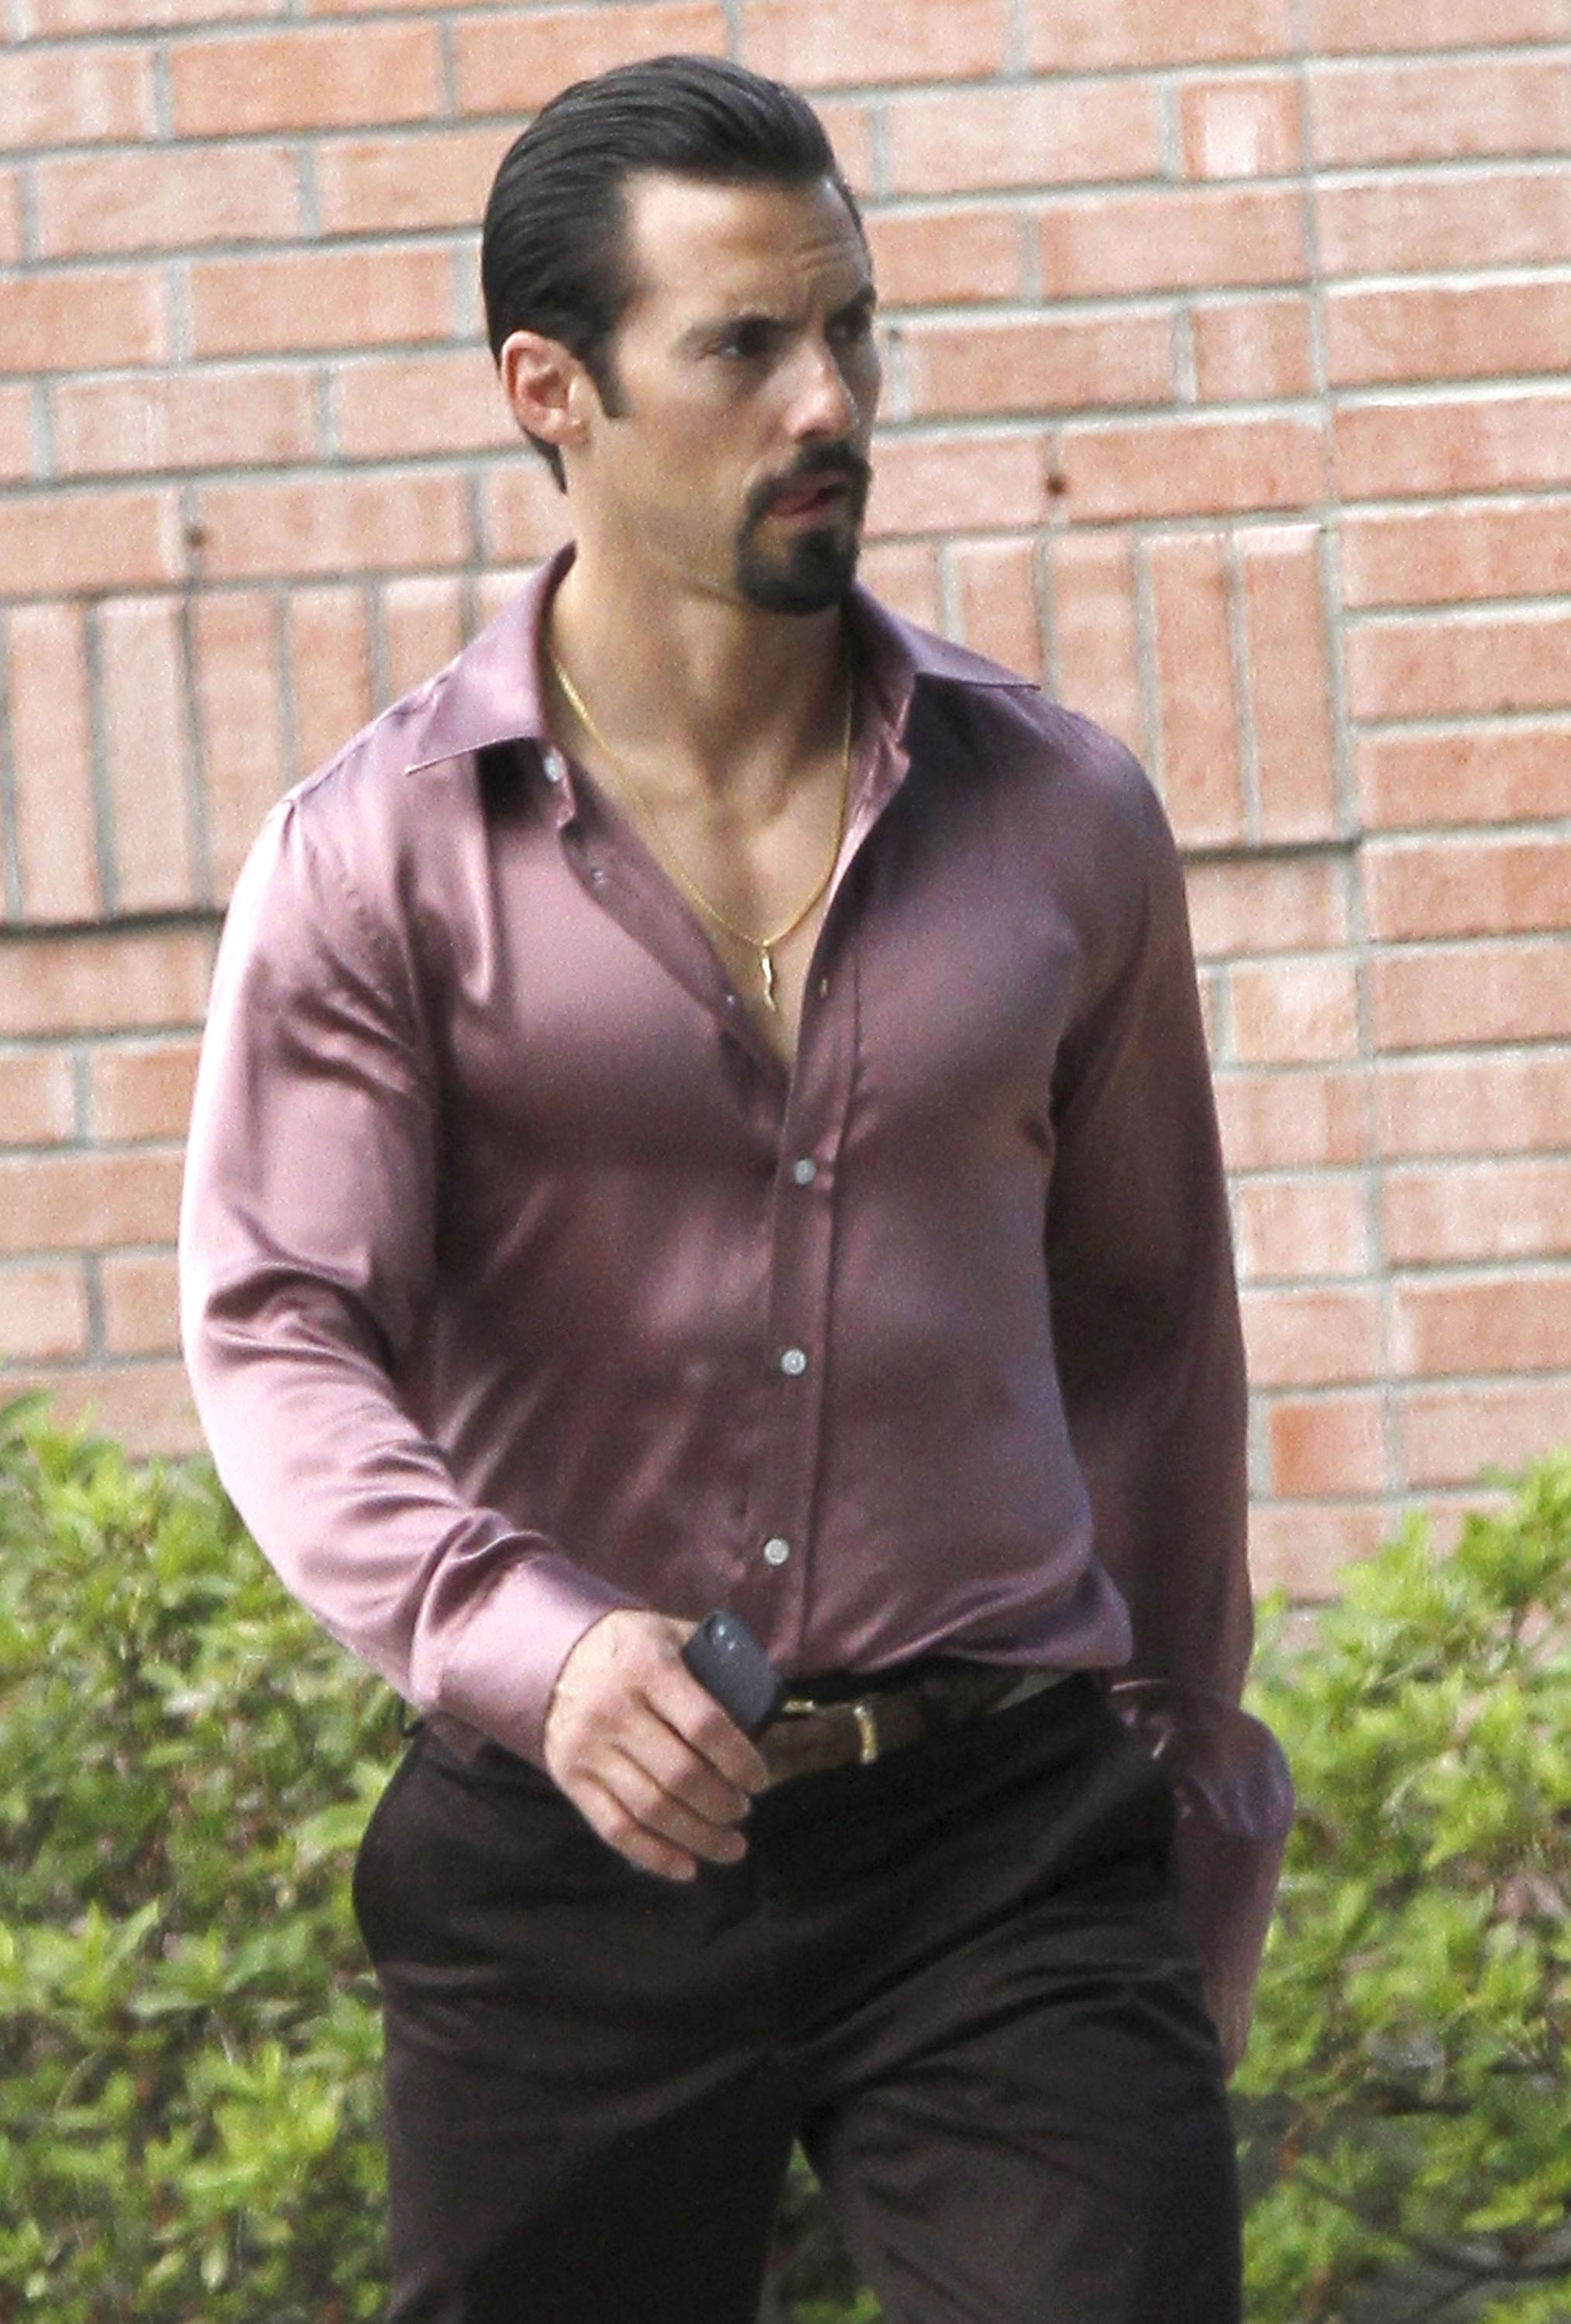 Milo Ventimiglia Slicked Back His Hair On Monday In New Orleans To Channing Tatum Scarlett Johansson Zac Efron And More Stars On Set Popsugar Entertainment Photo 15